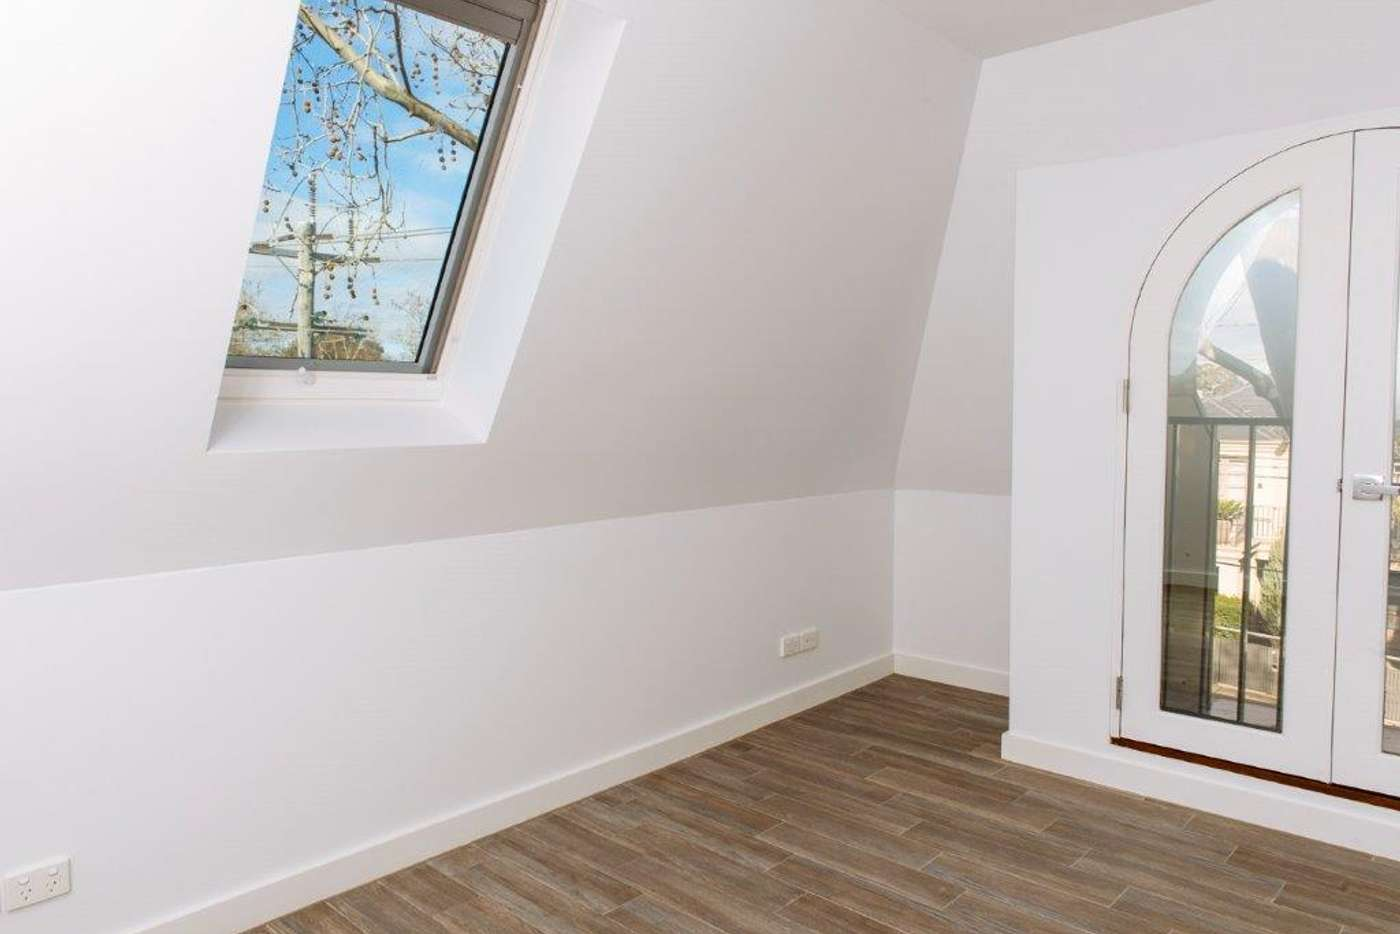 Fifth view of Homely apartment listing, 7/2 Seymour  Avenue, Armadale VIC 3143